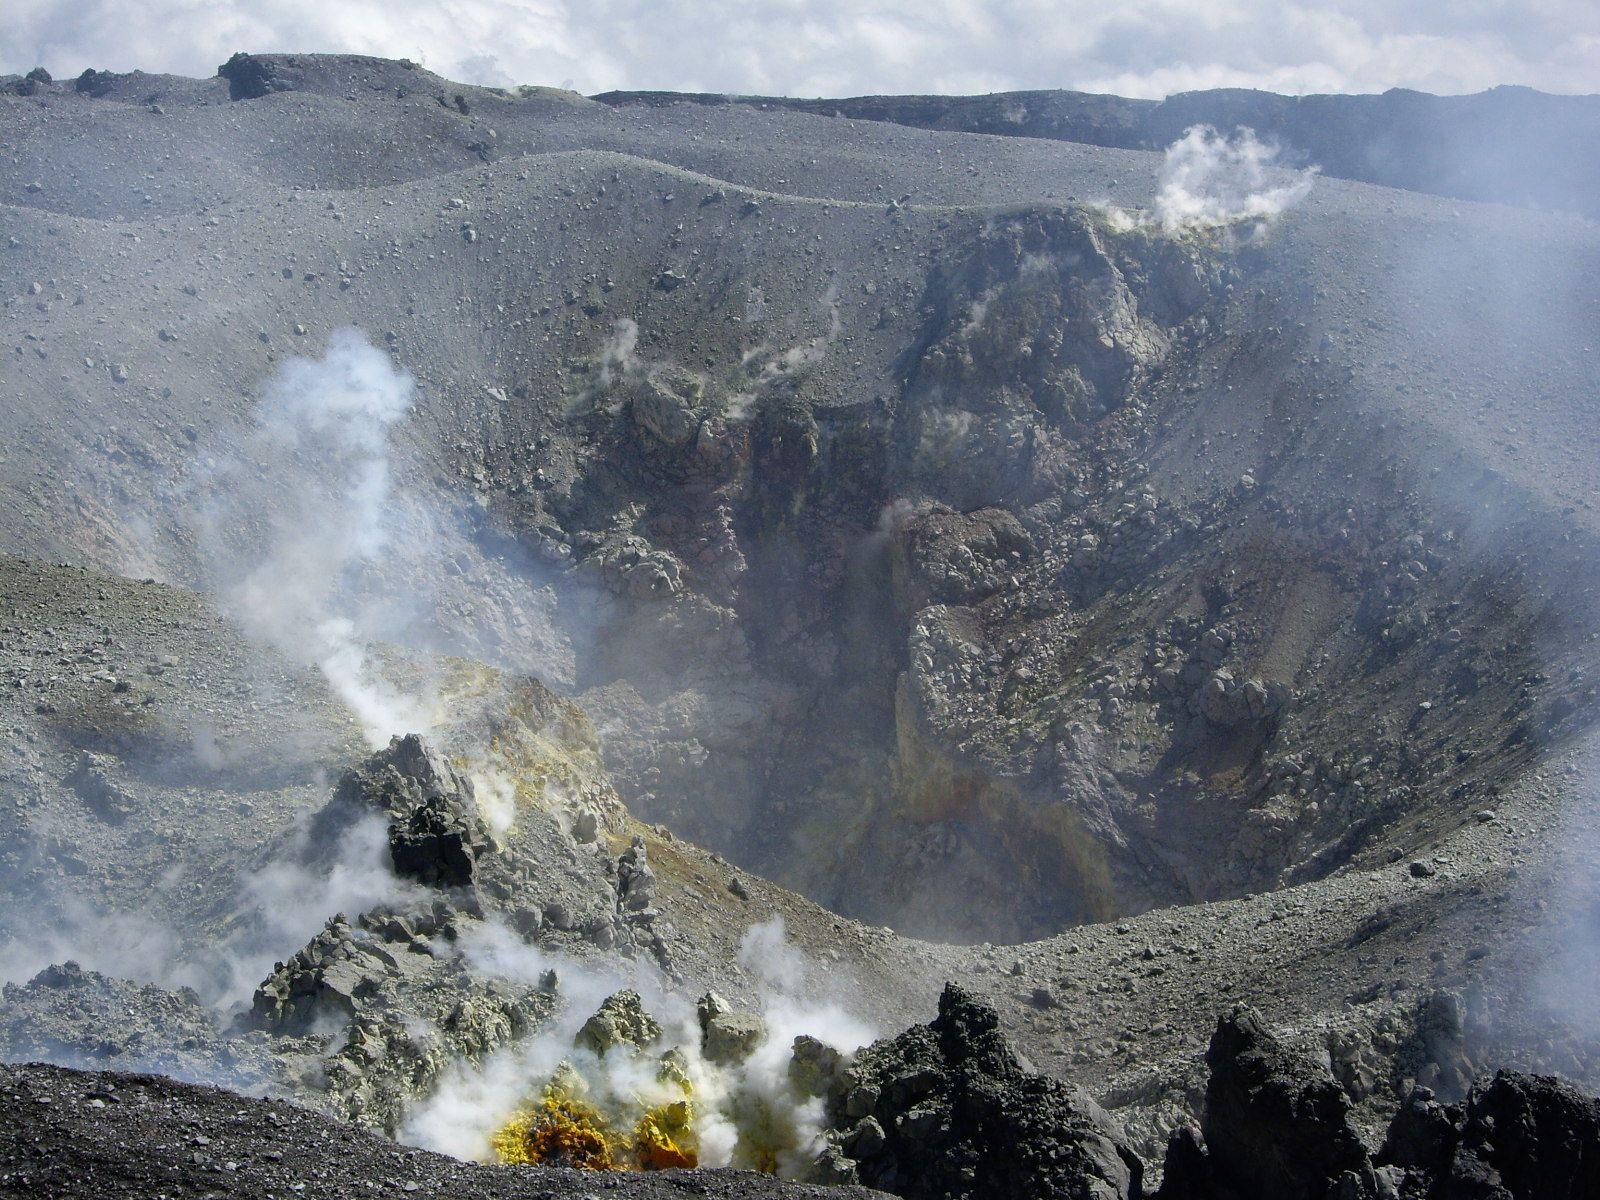 Gunung Slamet - cratère actif - photo R. Woodall